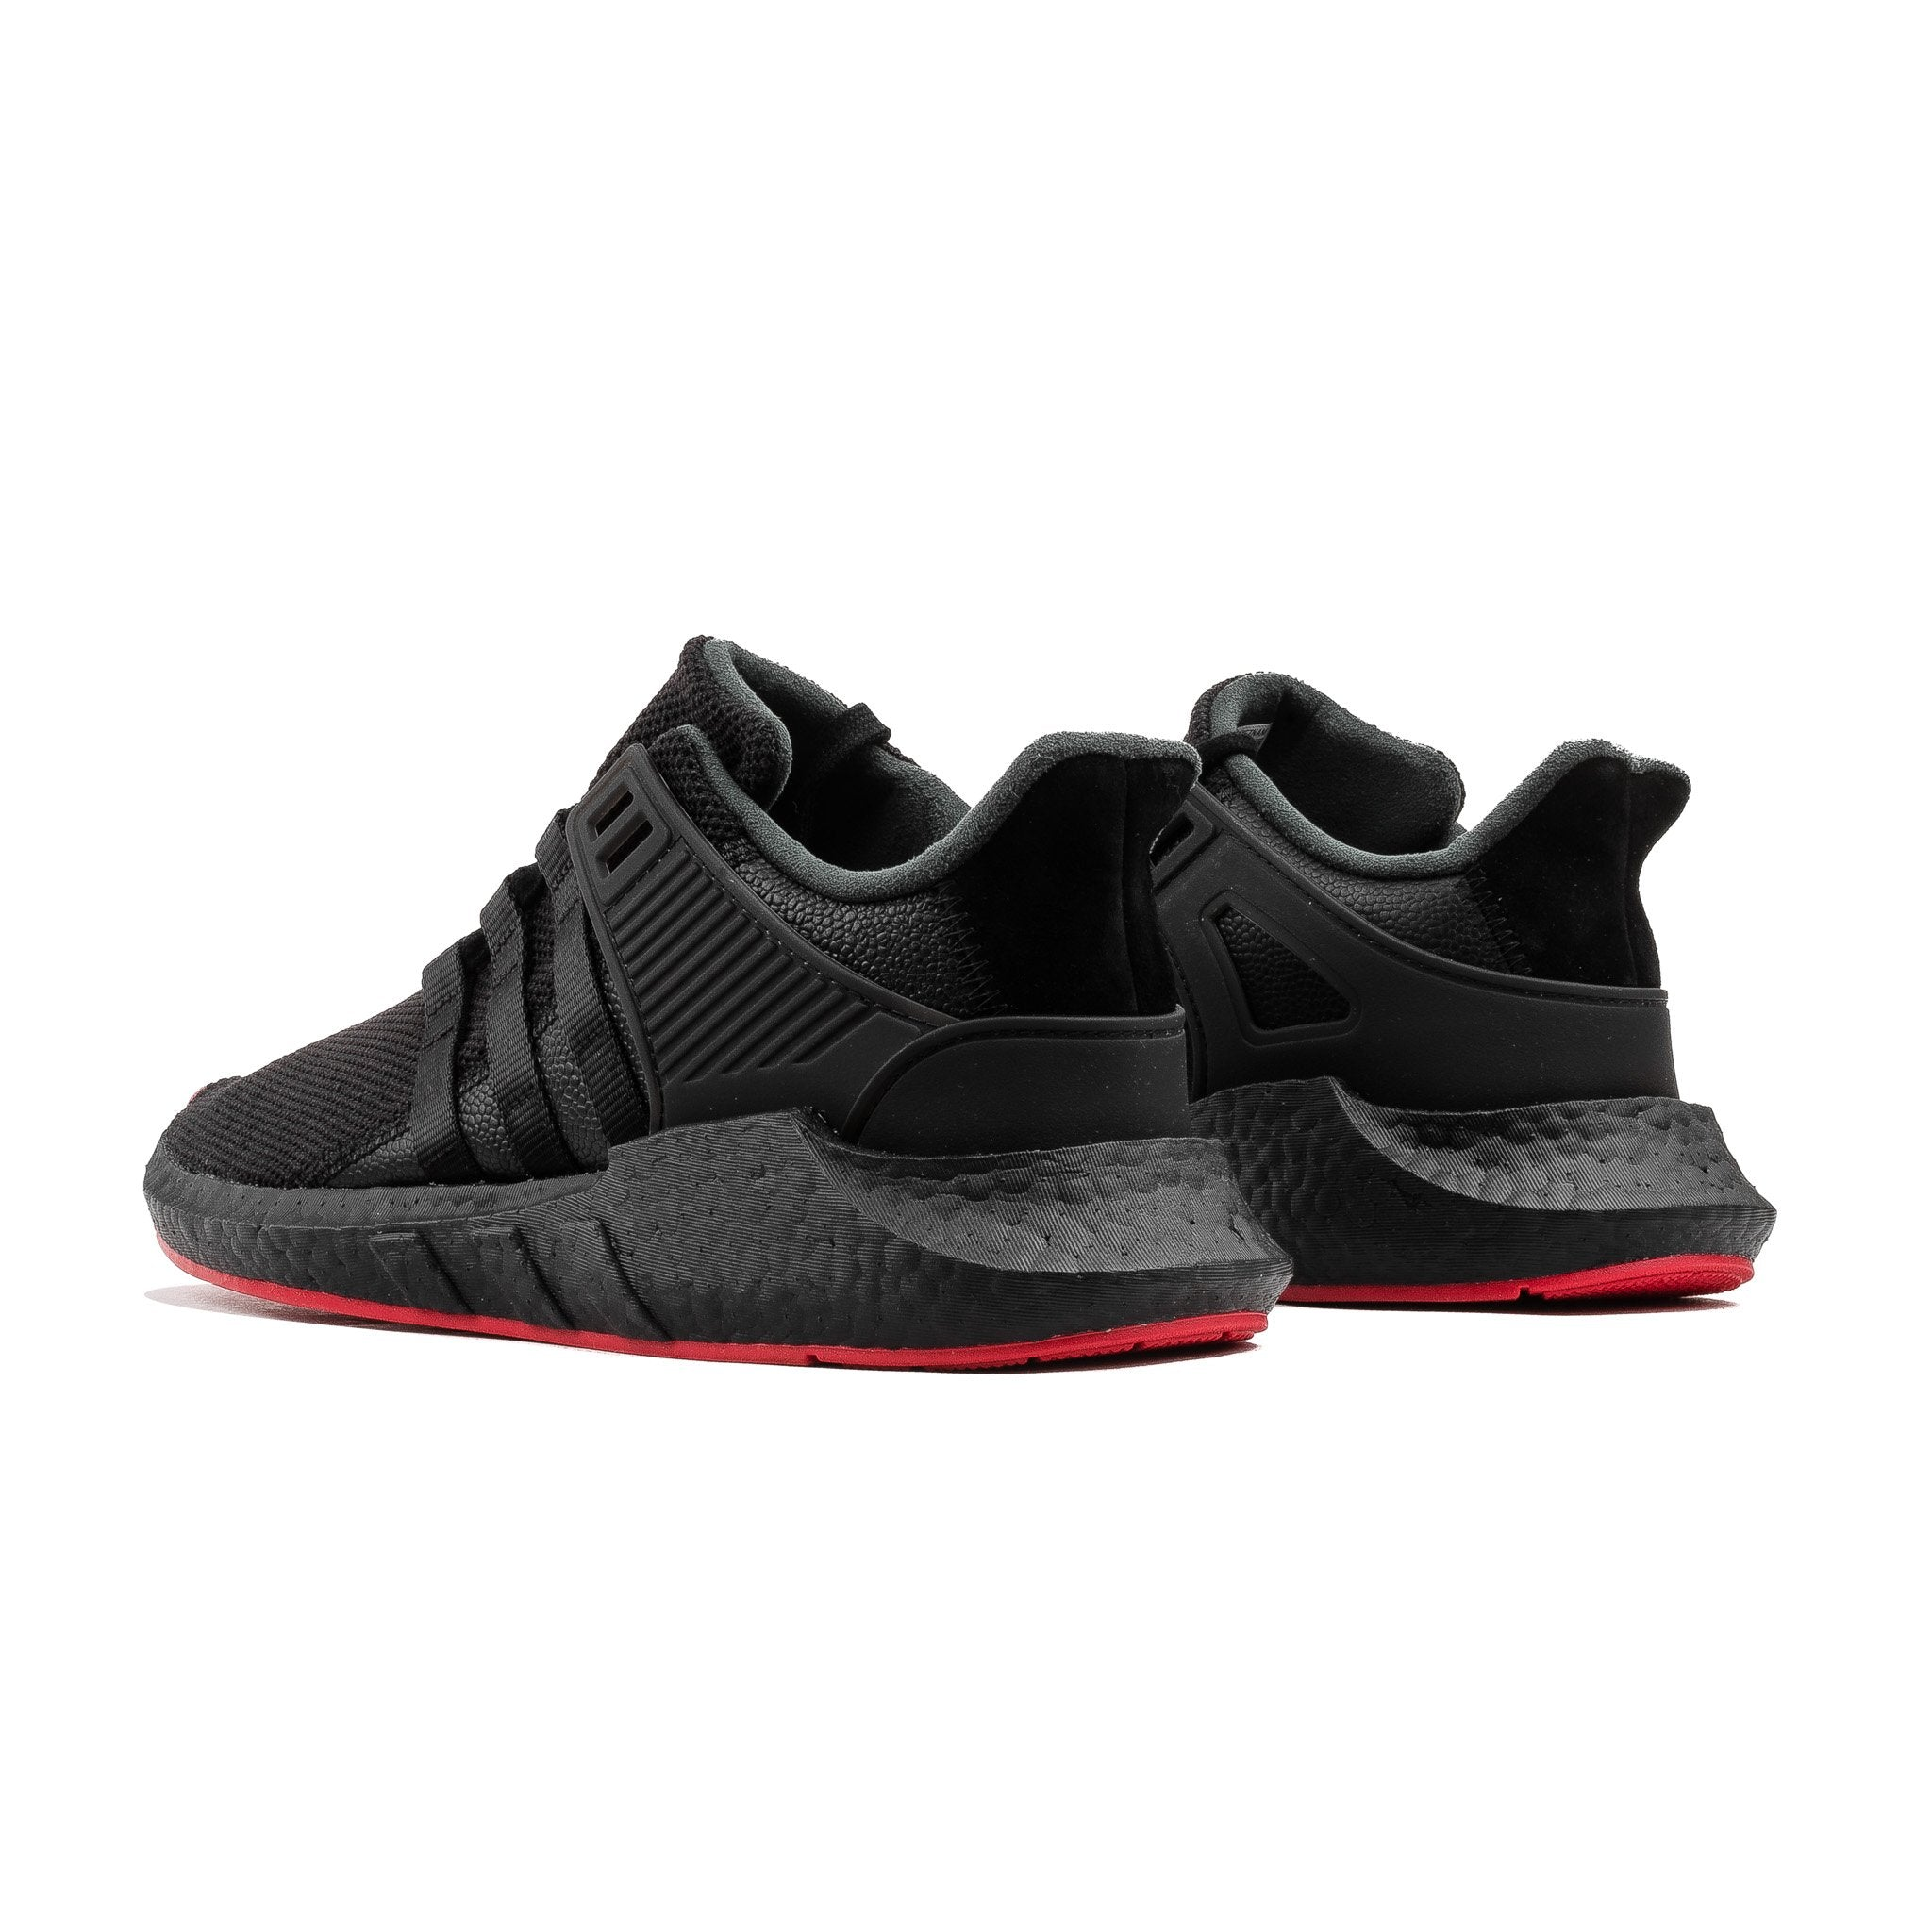 EQT Support 93/17 CQ2394 Black/Red